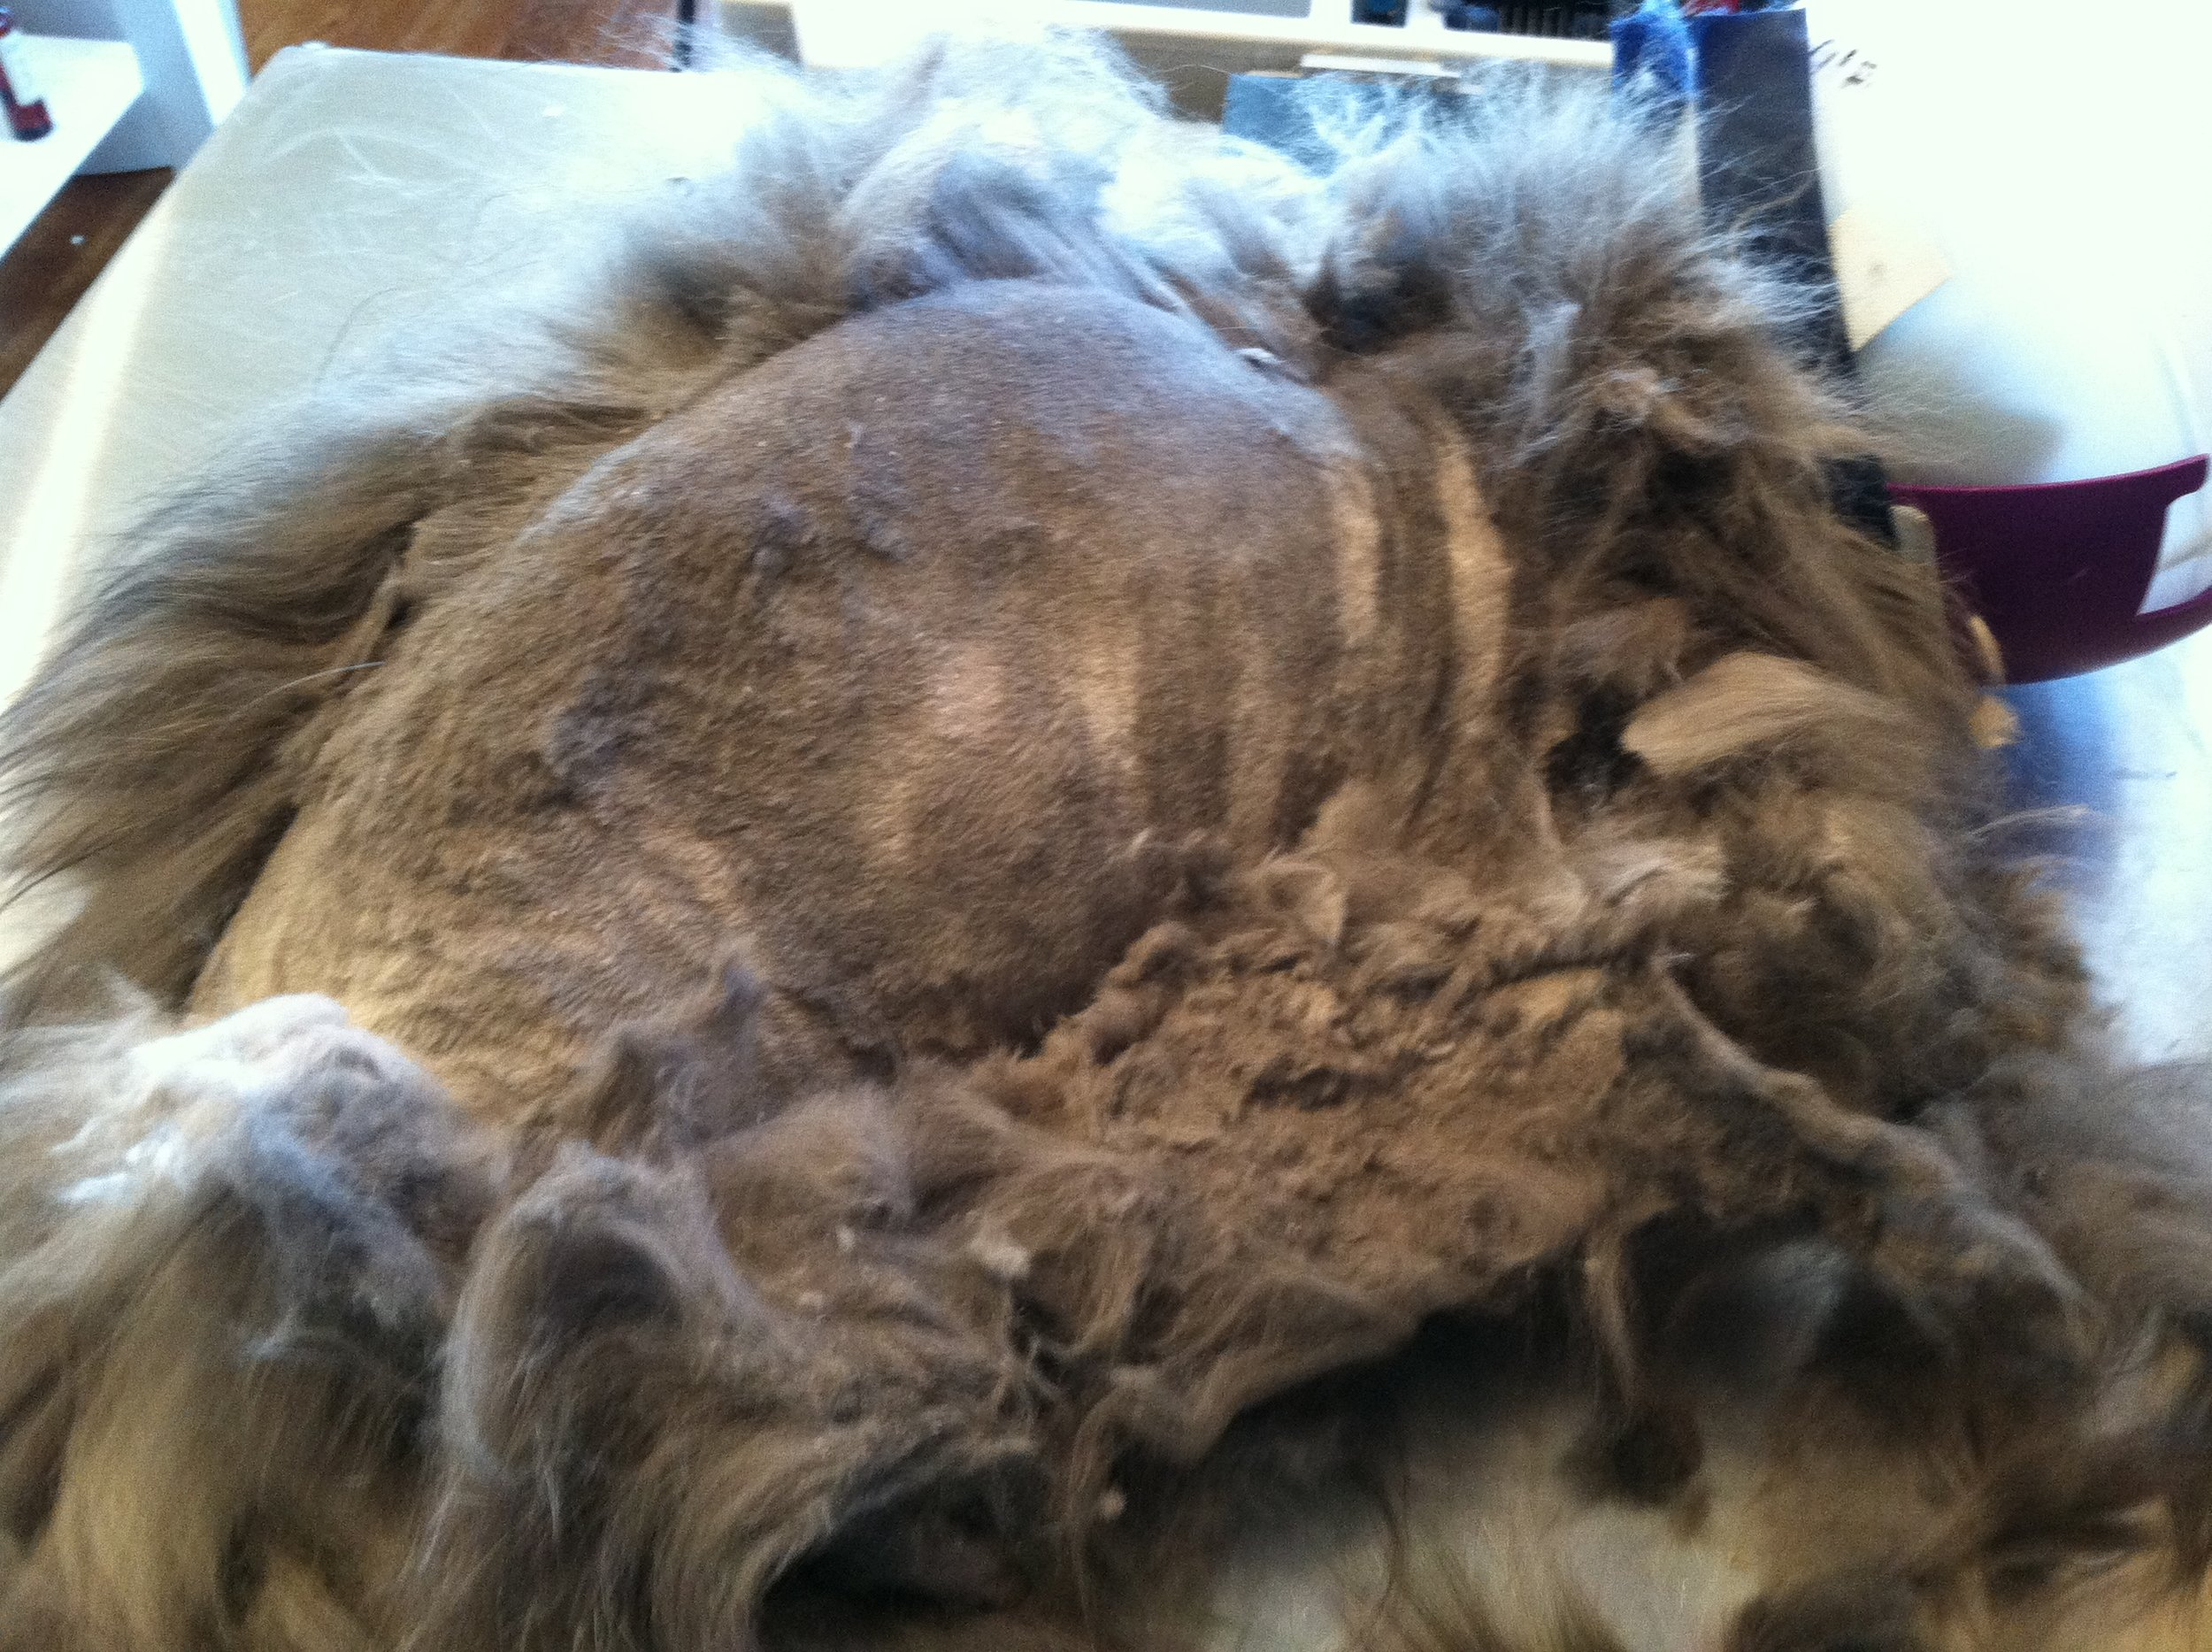 This Long-Haired cat is severely matted and shaving the cat into a Lion Cut is the only humane option